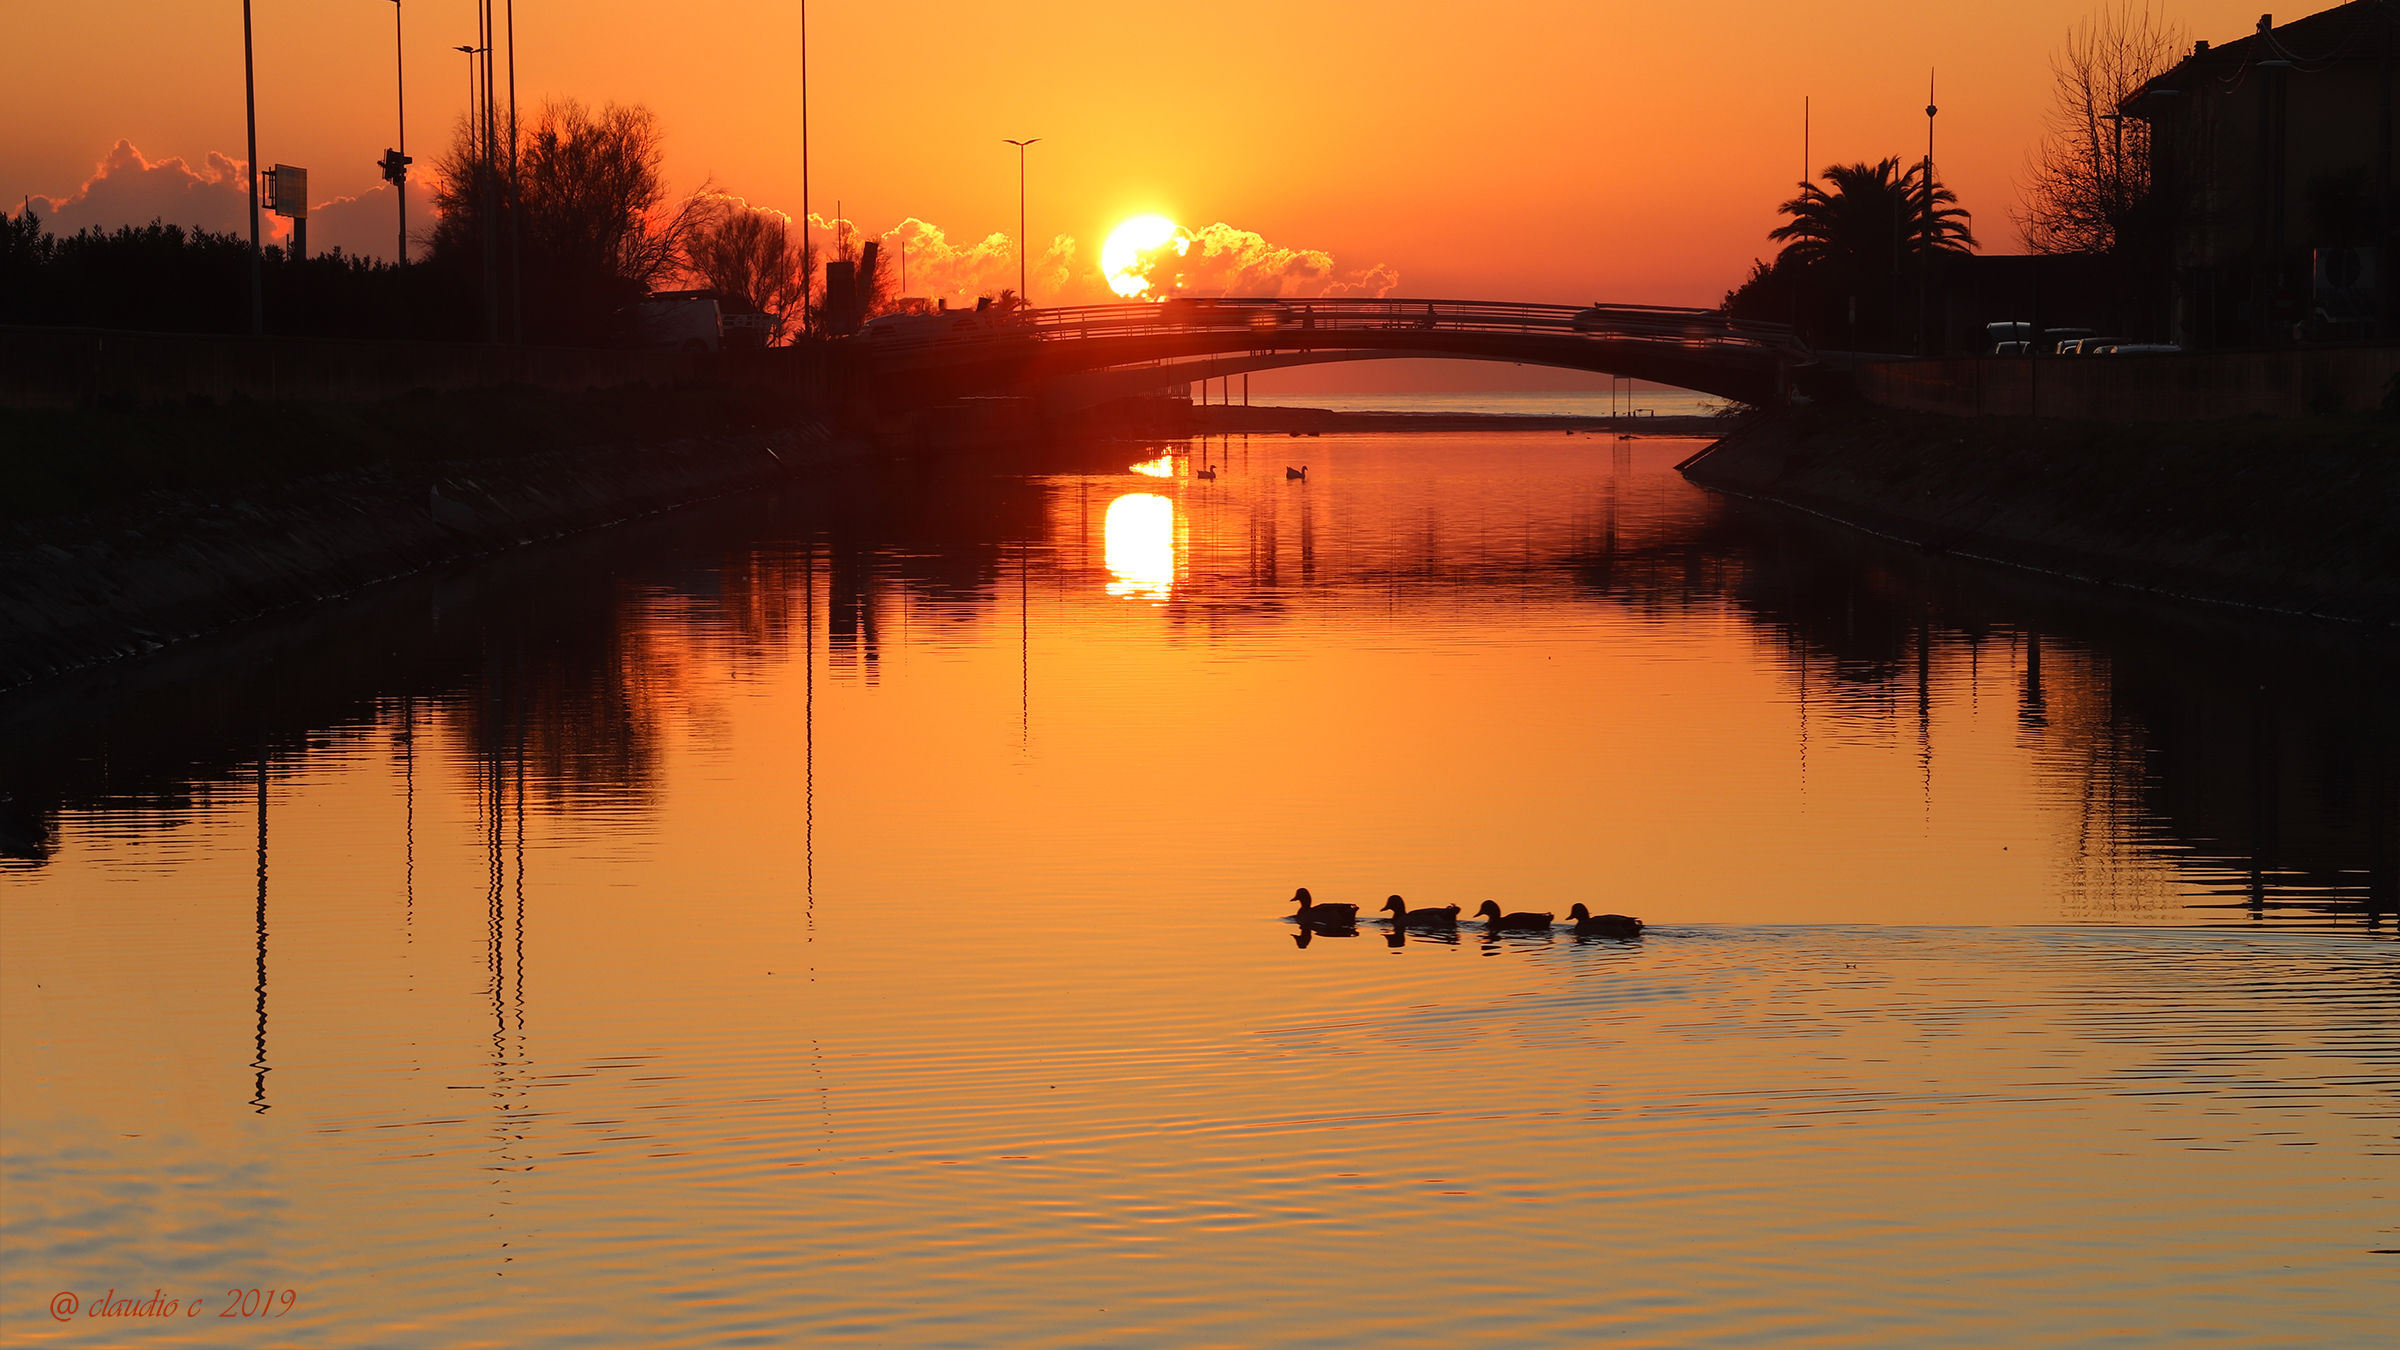 The Ducks and the sunset...